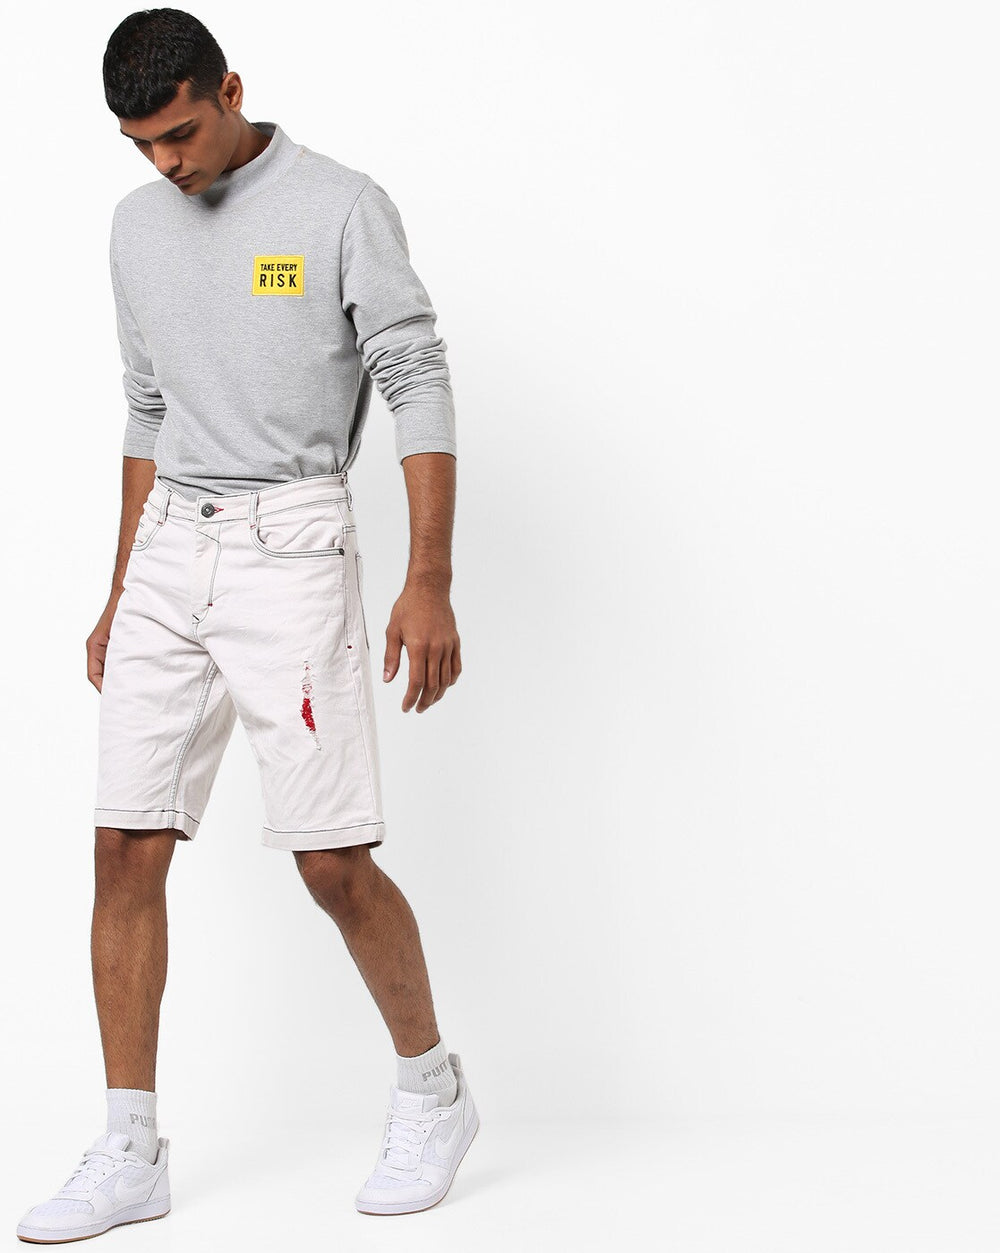 Disrupt White Regular Fit denim Shorts For Men's